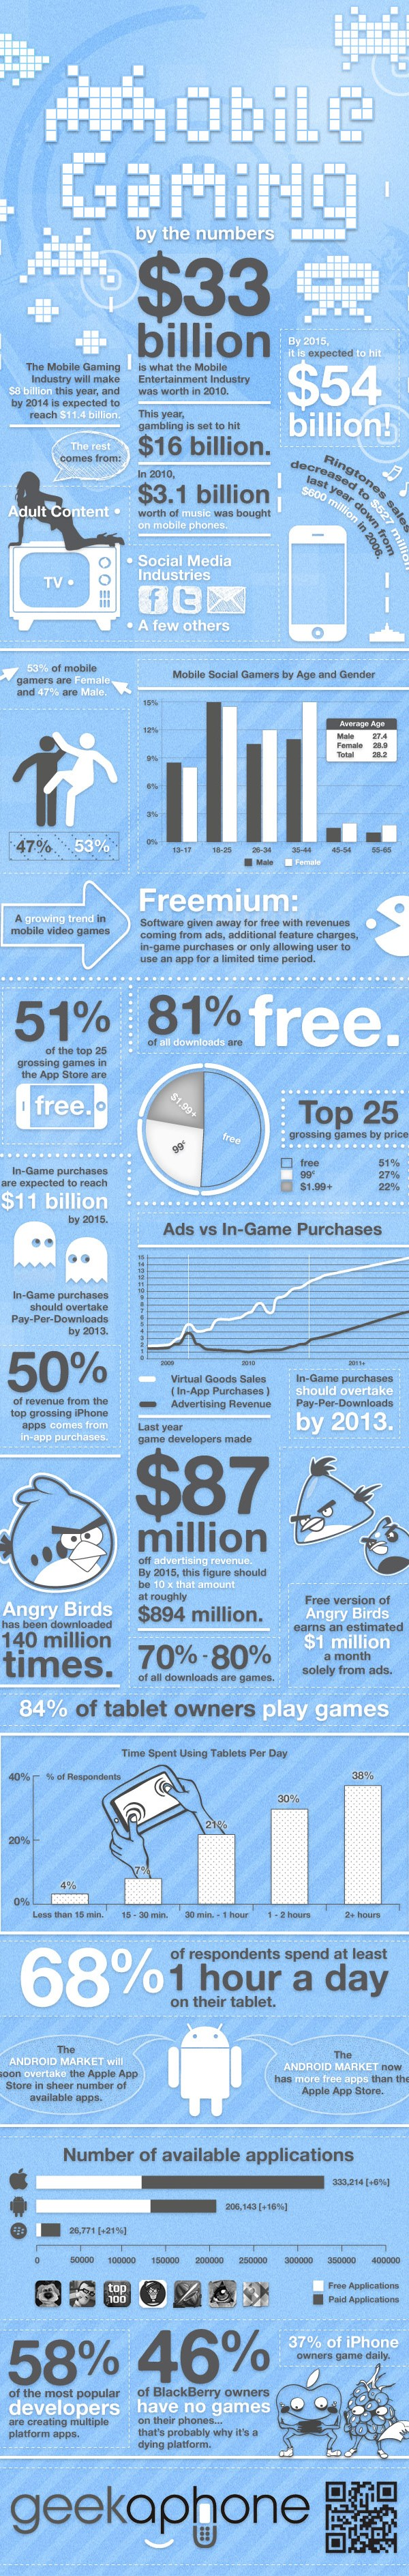 mobile games infographic